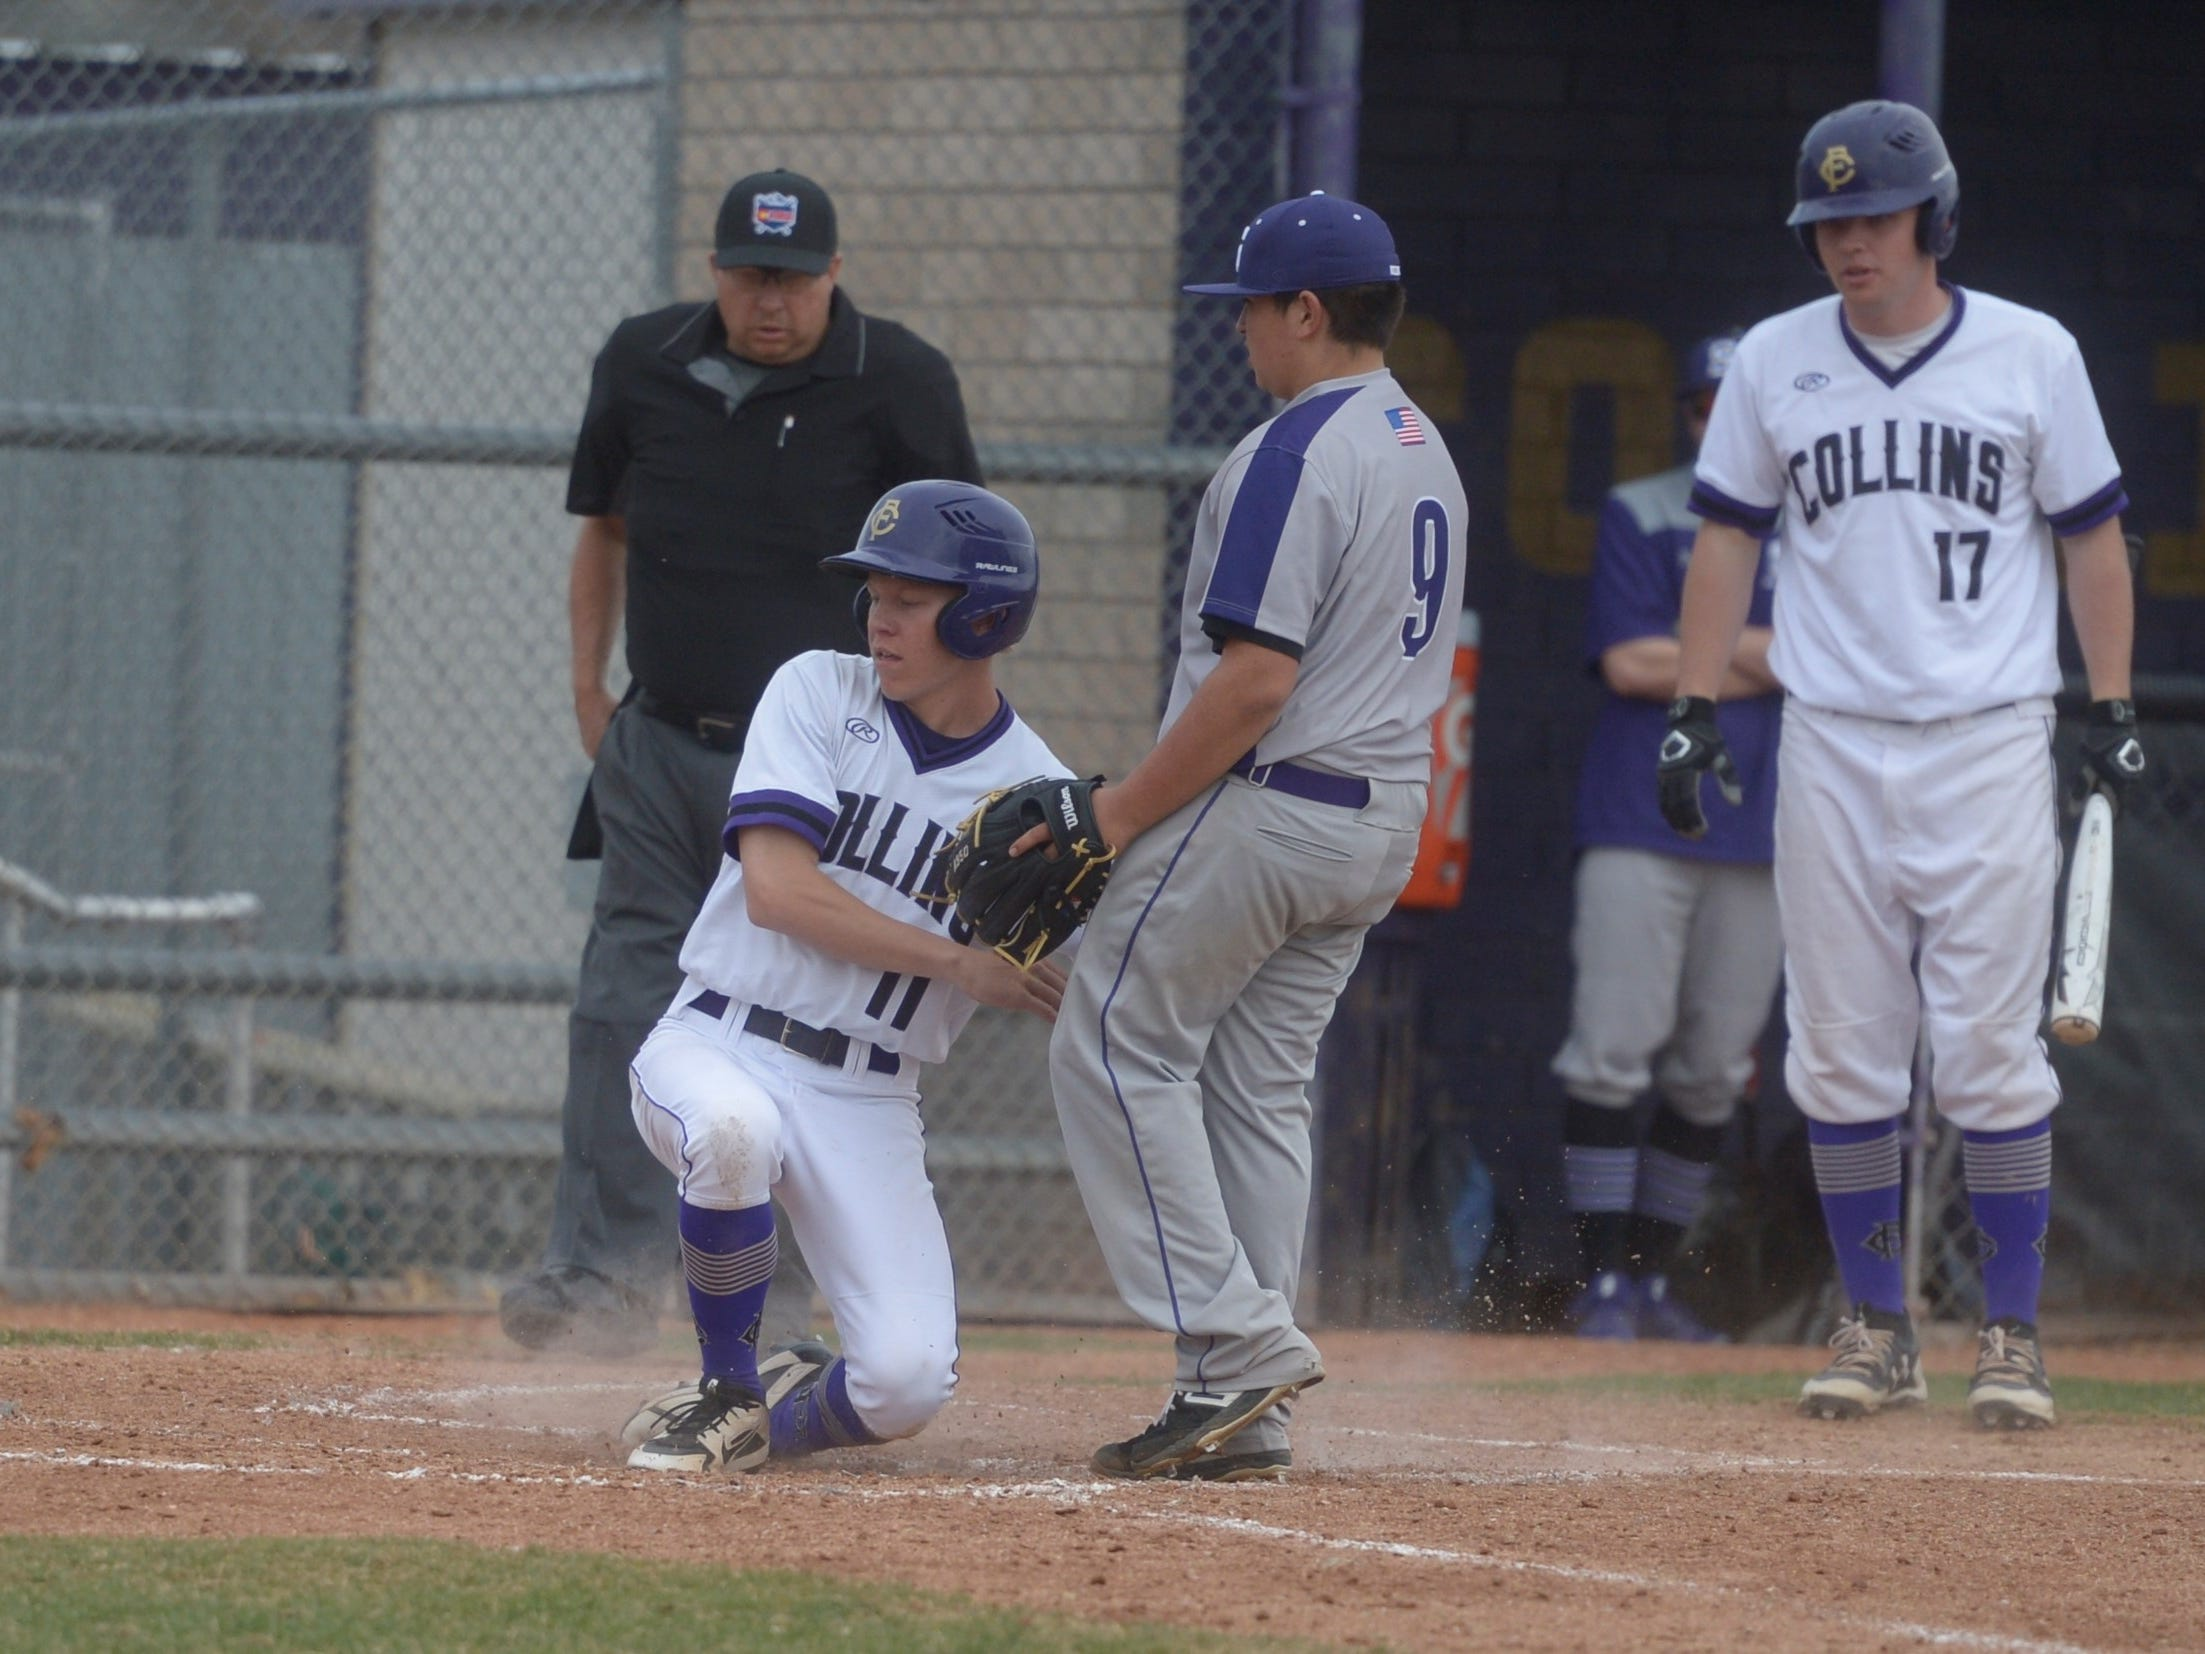 Fort Collins High School baseball player Matthew Oberlander slides into home during a game against Denver South on Monday, April 8, 2019. The Lambkins won 13-3 to move to 10-0 on the season.